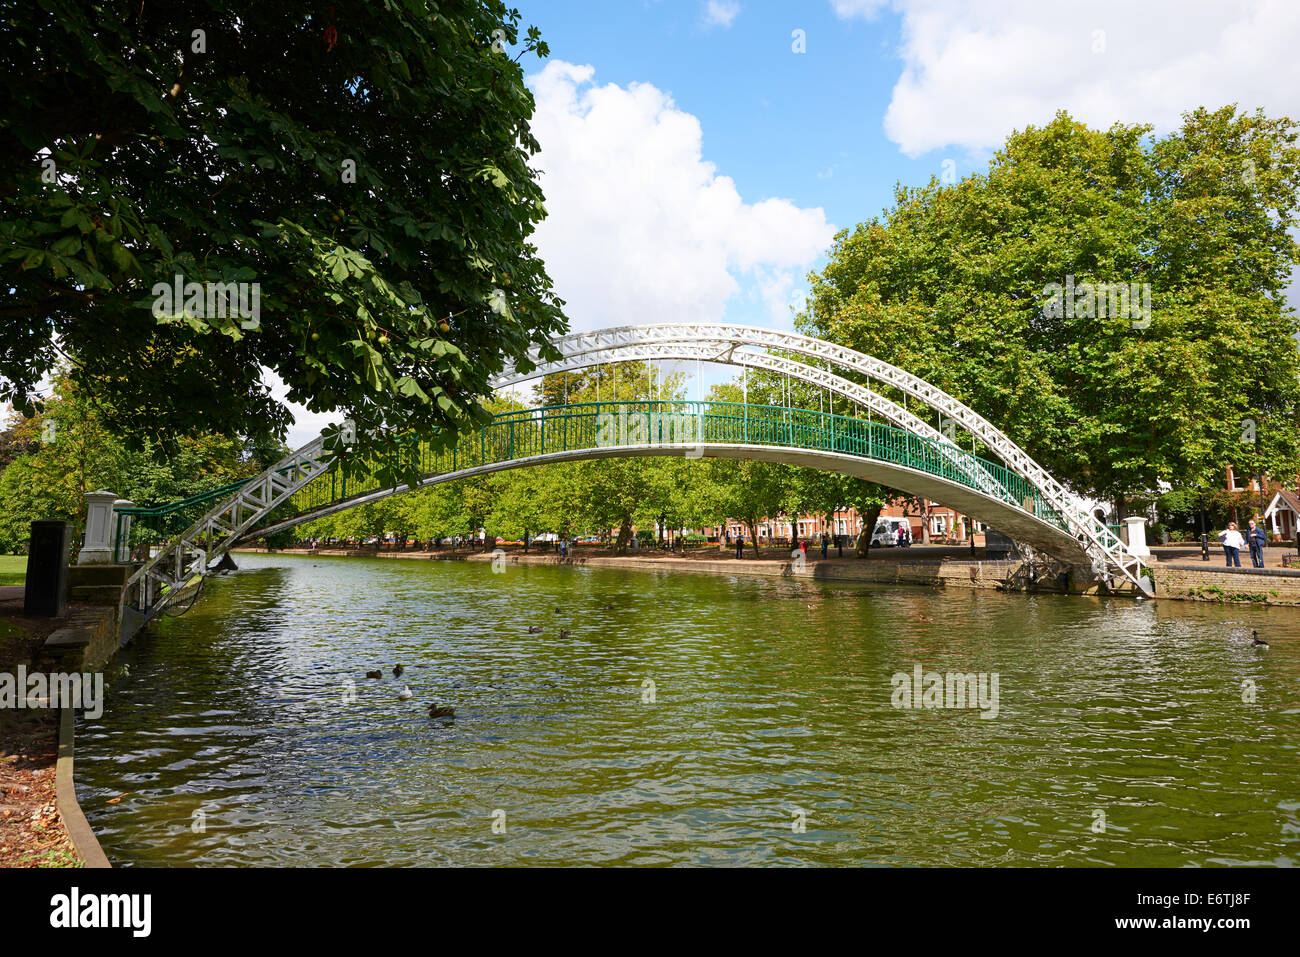 Iron Pedestrian Suspension Bridge Over The River Great Ouse Dated 1888 By John Webster The Embankment Bedford Bedfordshire - Stock Image